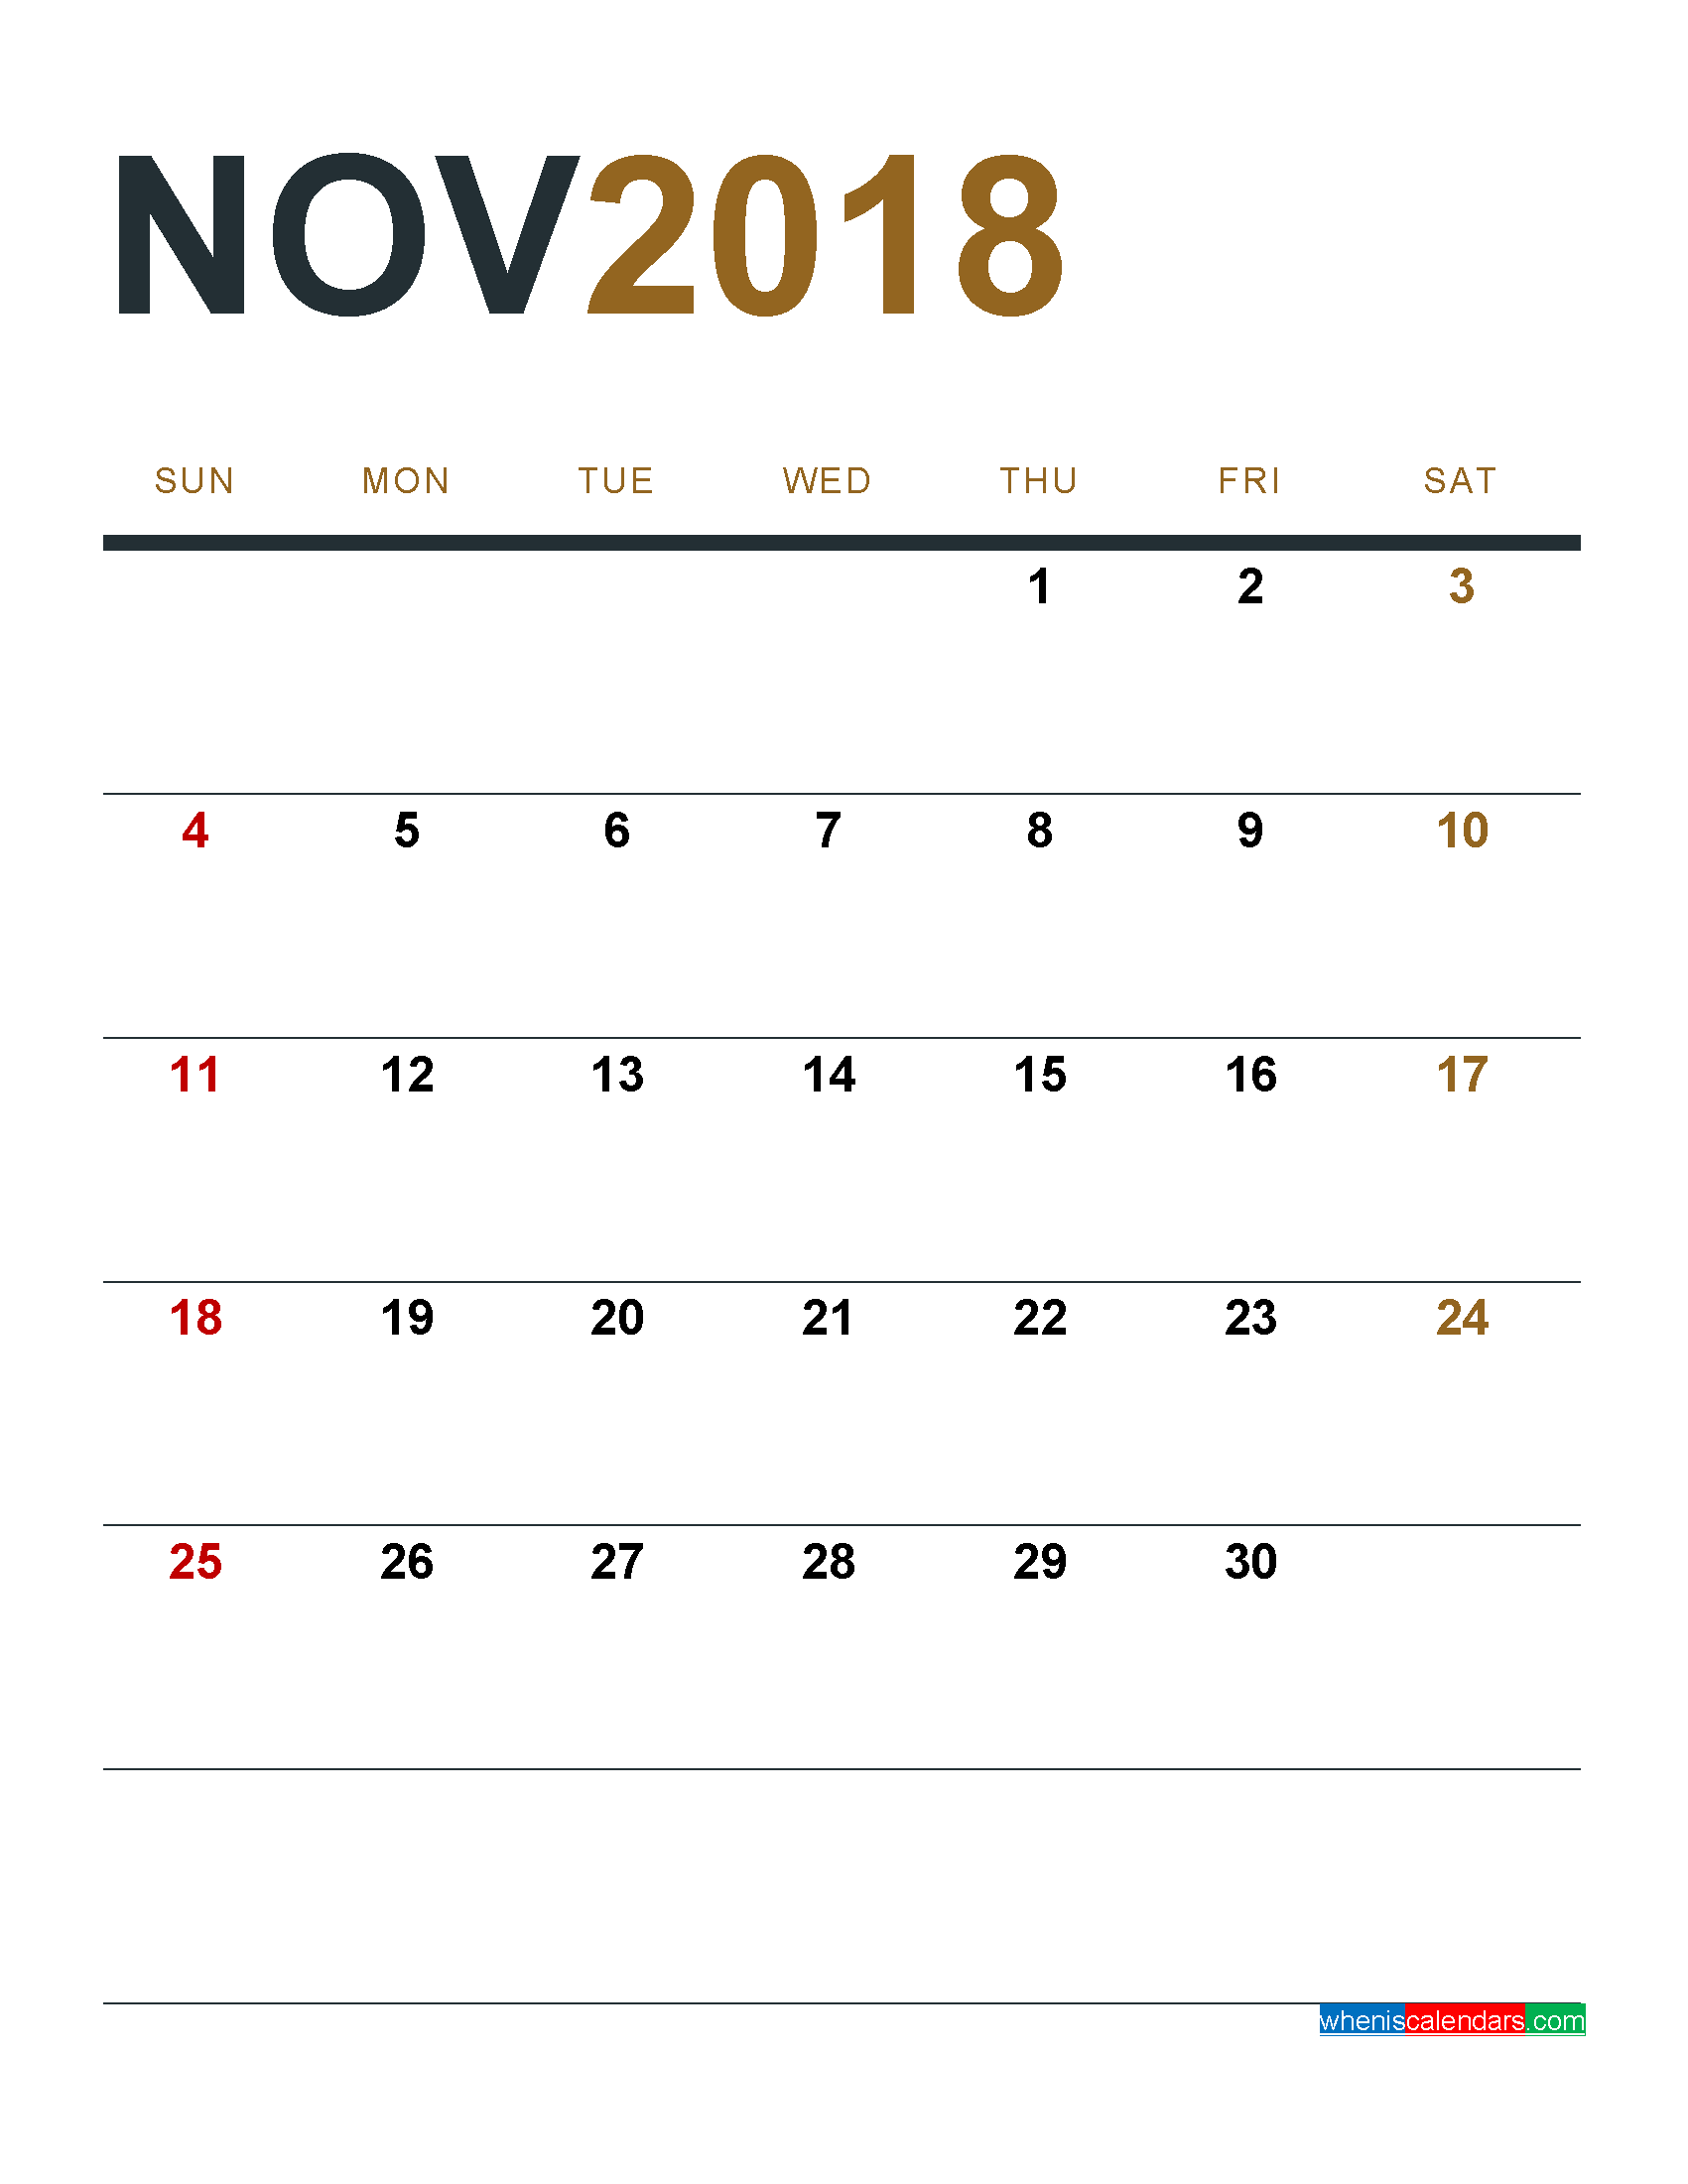 November 2018 Calendar Printable As Pdf And Image 1 Month 1 Page